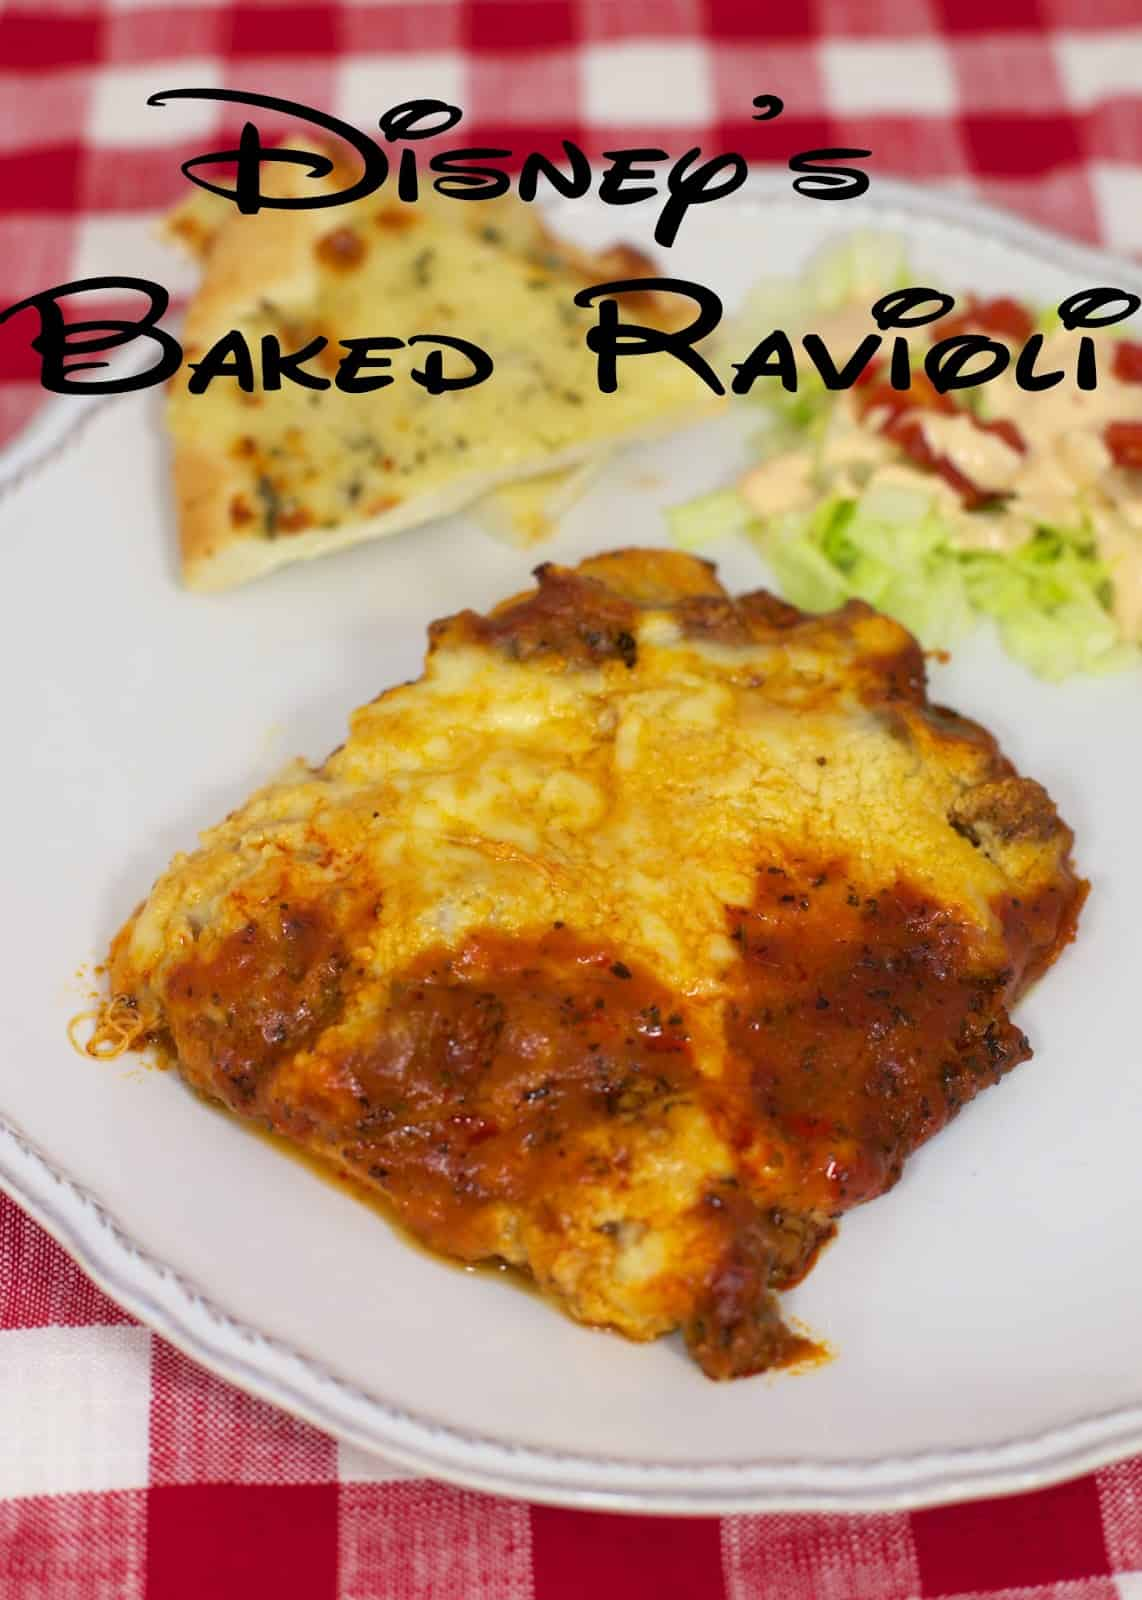 Disney's Baked Ravioli - Frozen ravioli smothered with a homemade meat sauce. Recipe from the Epcot Food and Wine Festival - the sauce is amazing! Tastes better than any restaurant! Can make ahead and freeze for later.